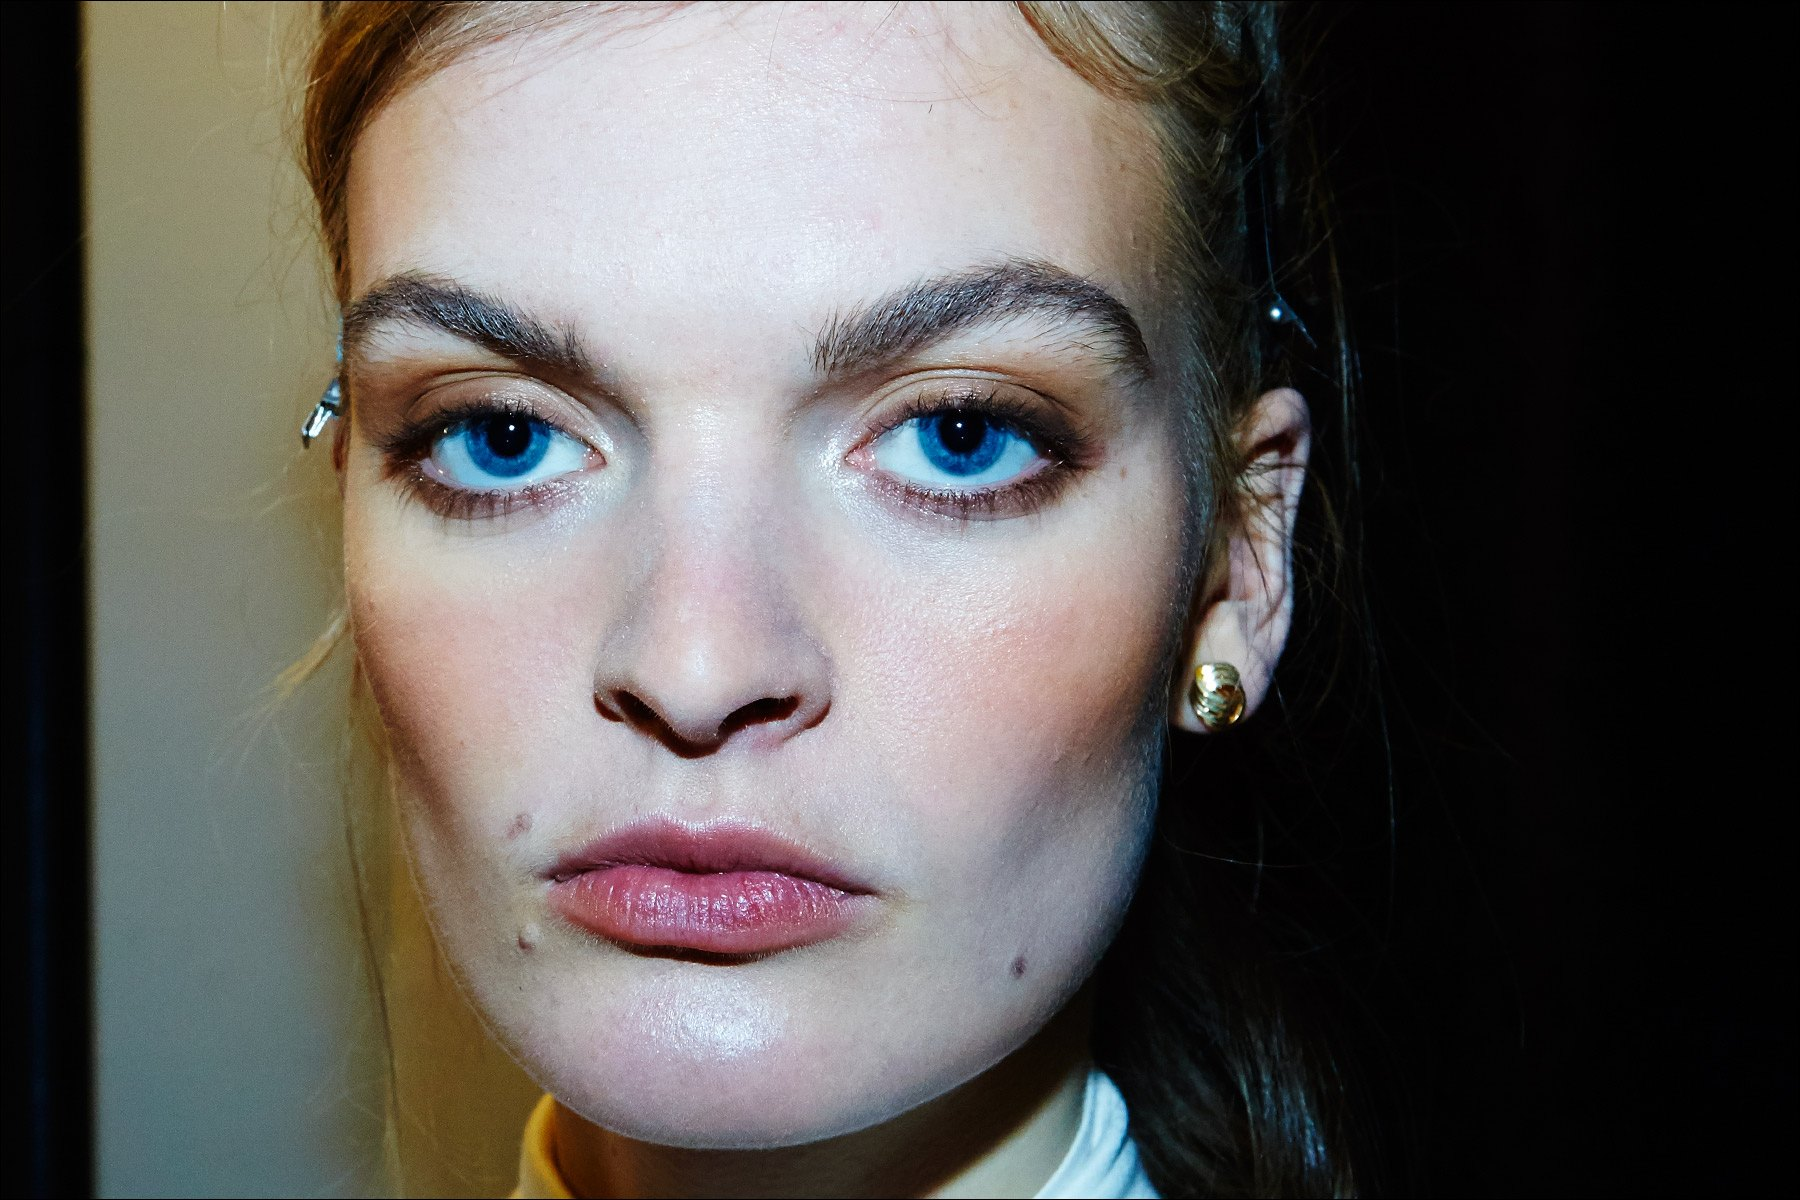 Model Juliane Grüner in makeup, backstage at the Adam Selman Fall 2017 womenswear show. Photography by Alexander Thompson for Ponyboy magazine NY.